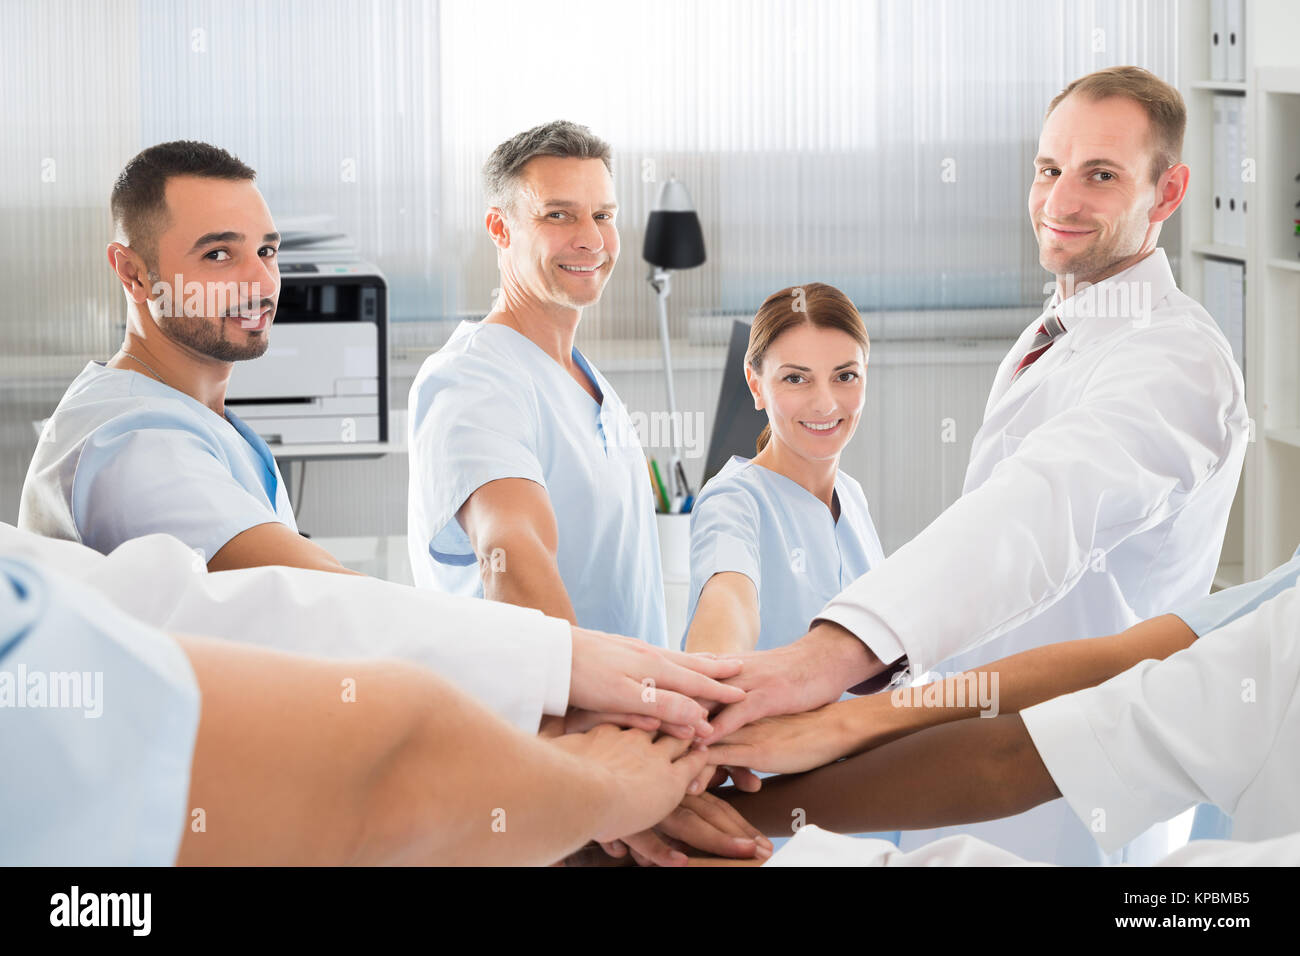 Confident Medical Team Smiling While Joining Hands - Stock Image